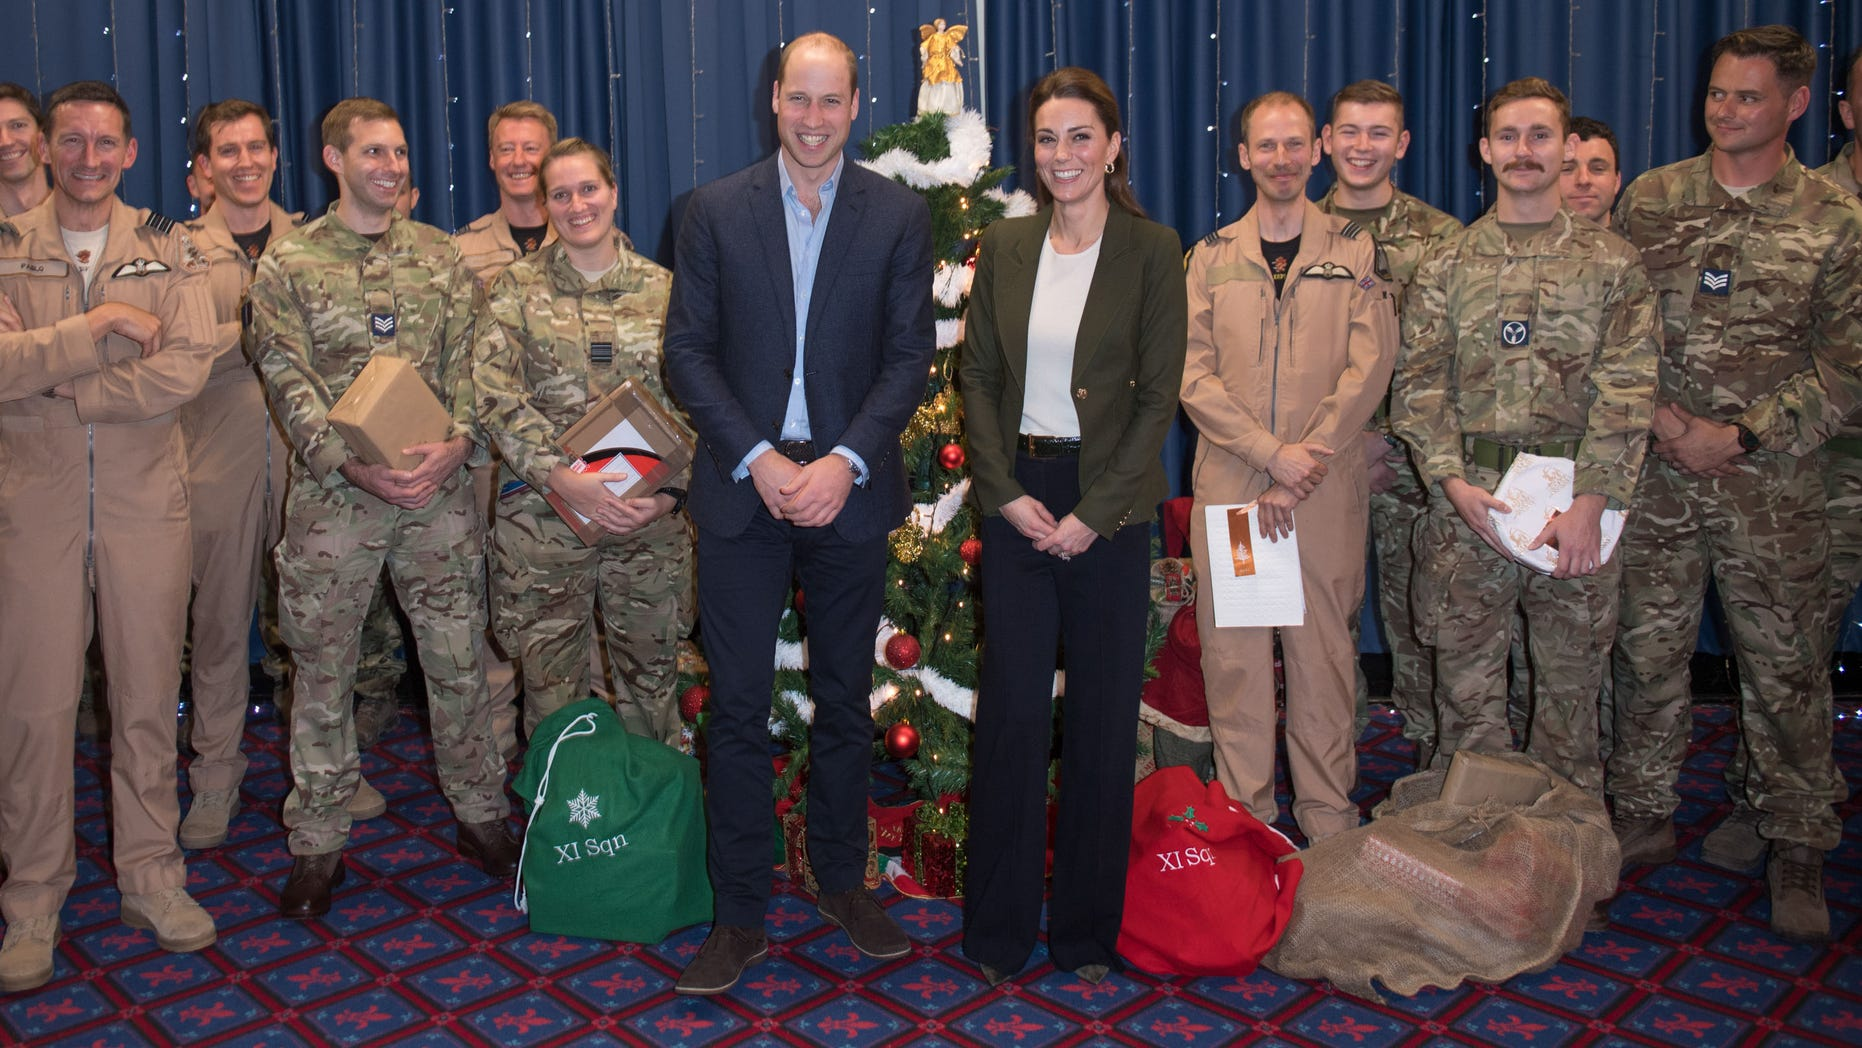 Prince William and Kate Middleton with troops in Cyprus